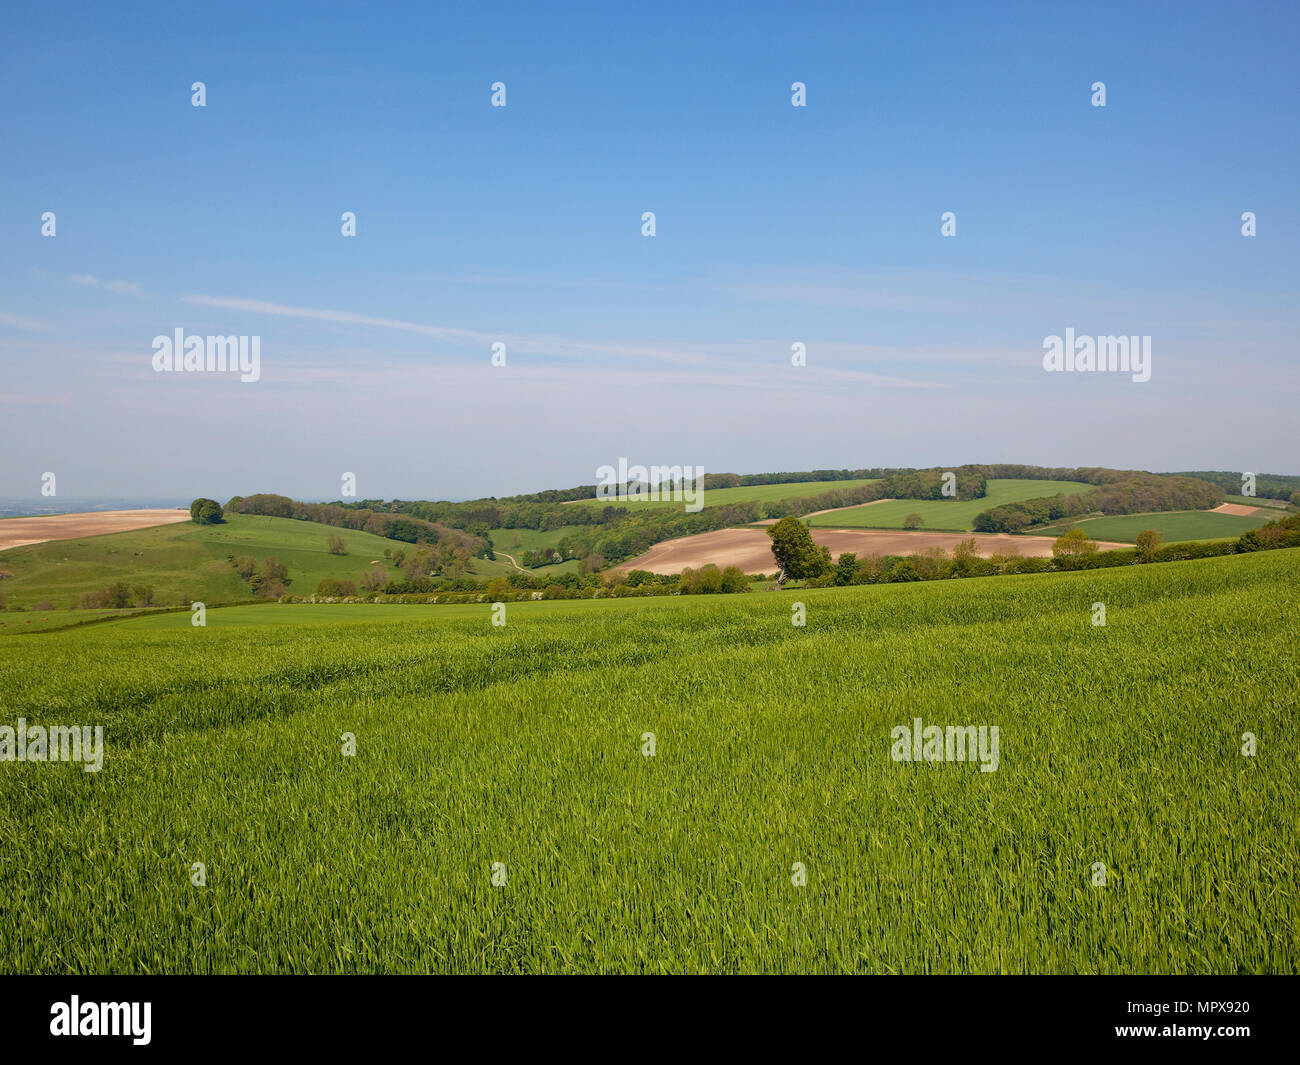 Yorkshire Wolds Springtime crops overlooking patchwork fields with woodland and hedgerows under a blue sky with wispy white cloud - Stock Image